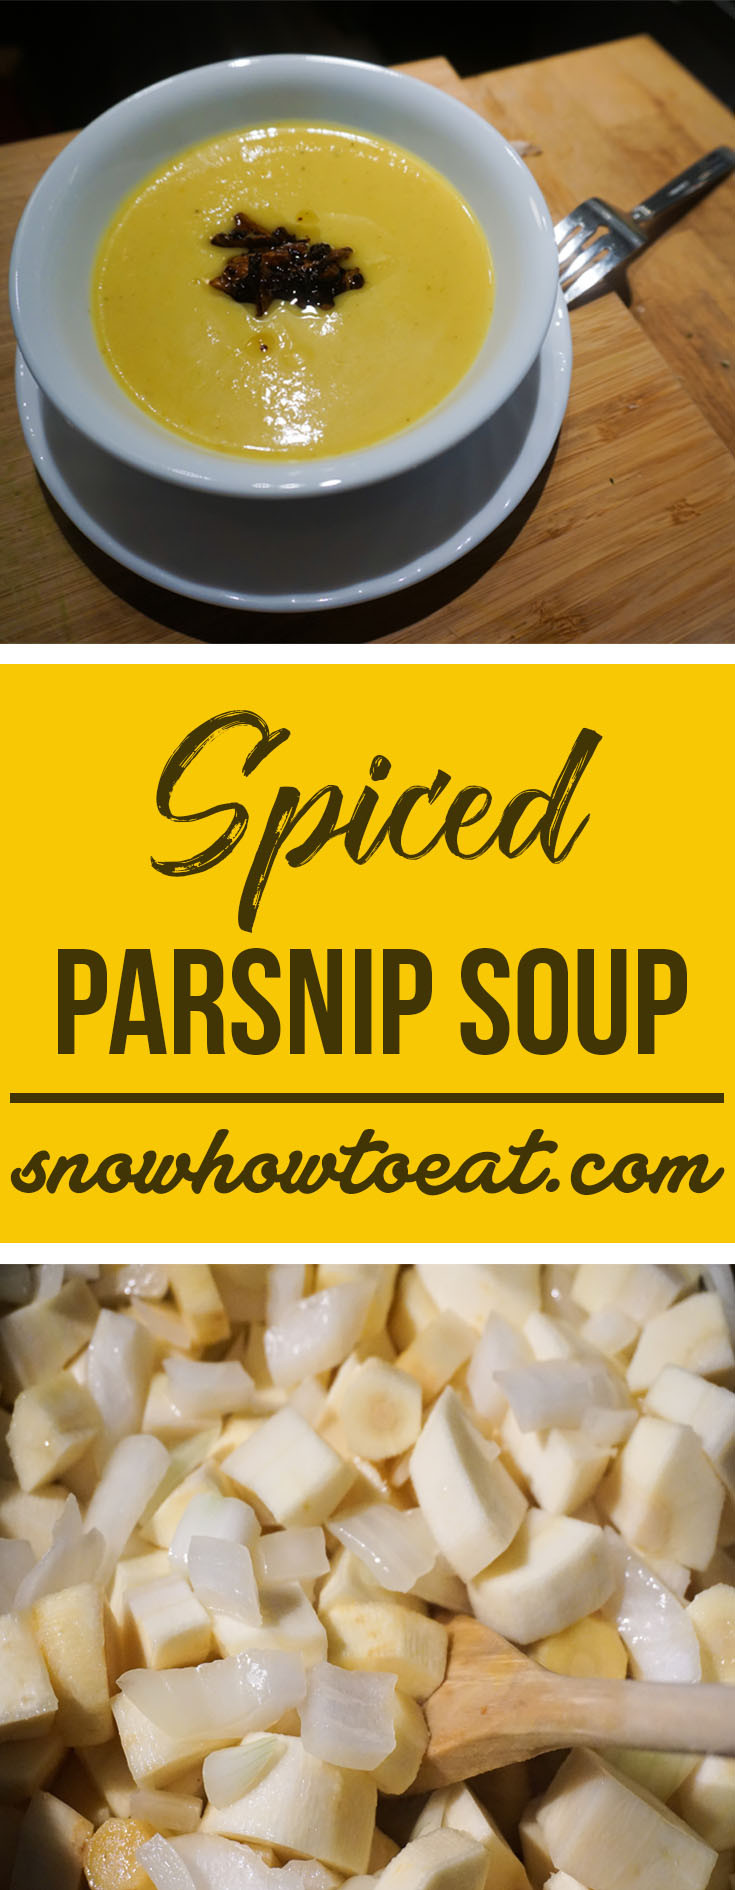 Try this warm, spiced parsnip soup this frosty winter season!